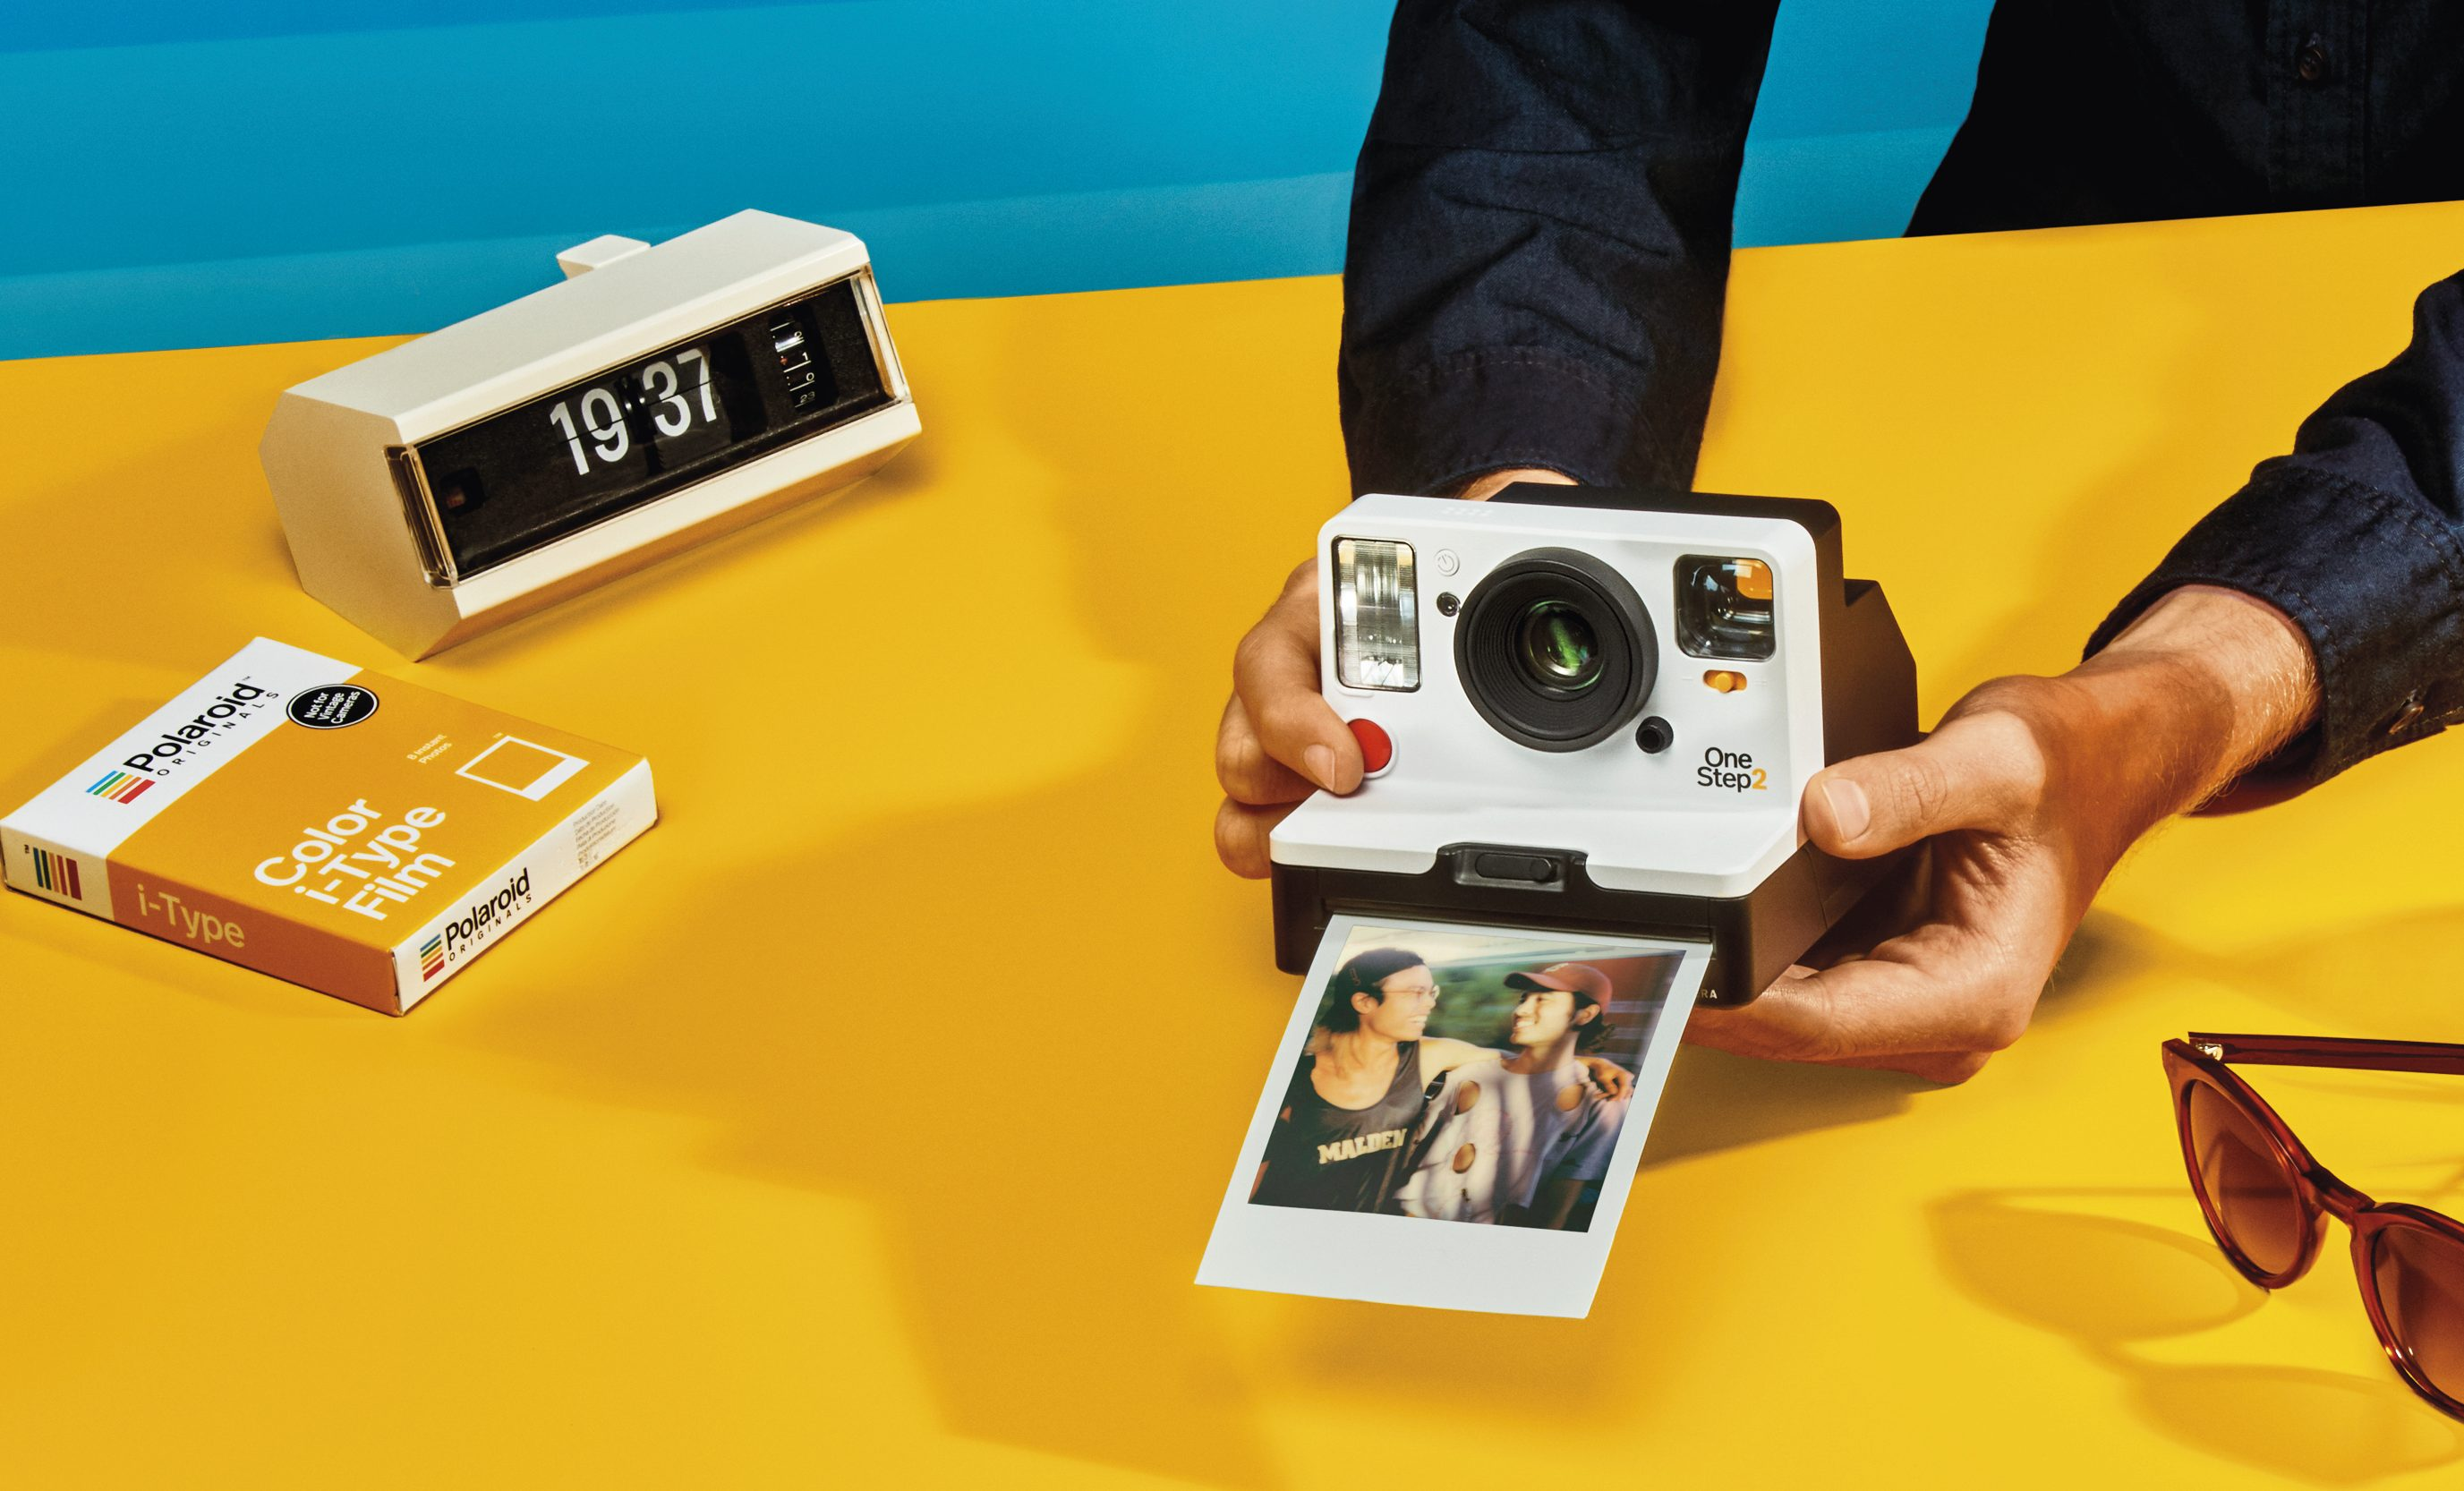 Polaroid brings back the classic instant camera with launch of the new OneStep 2